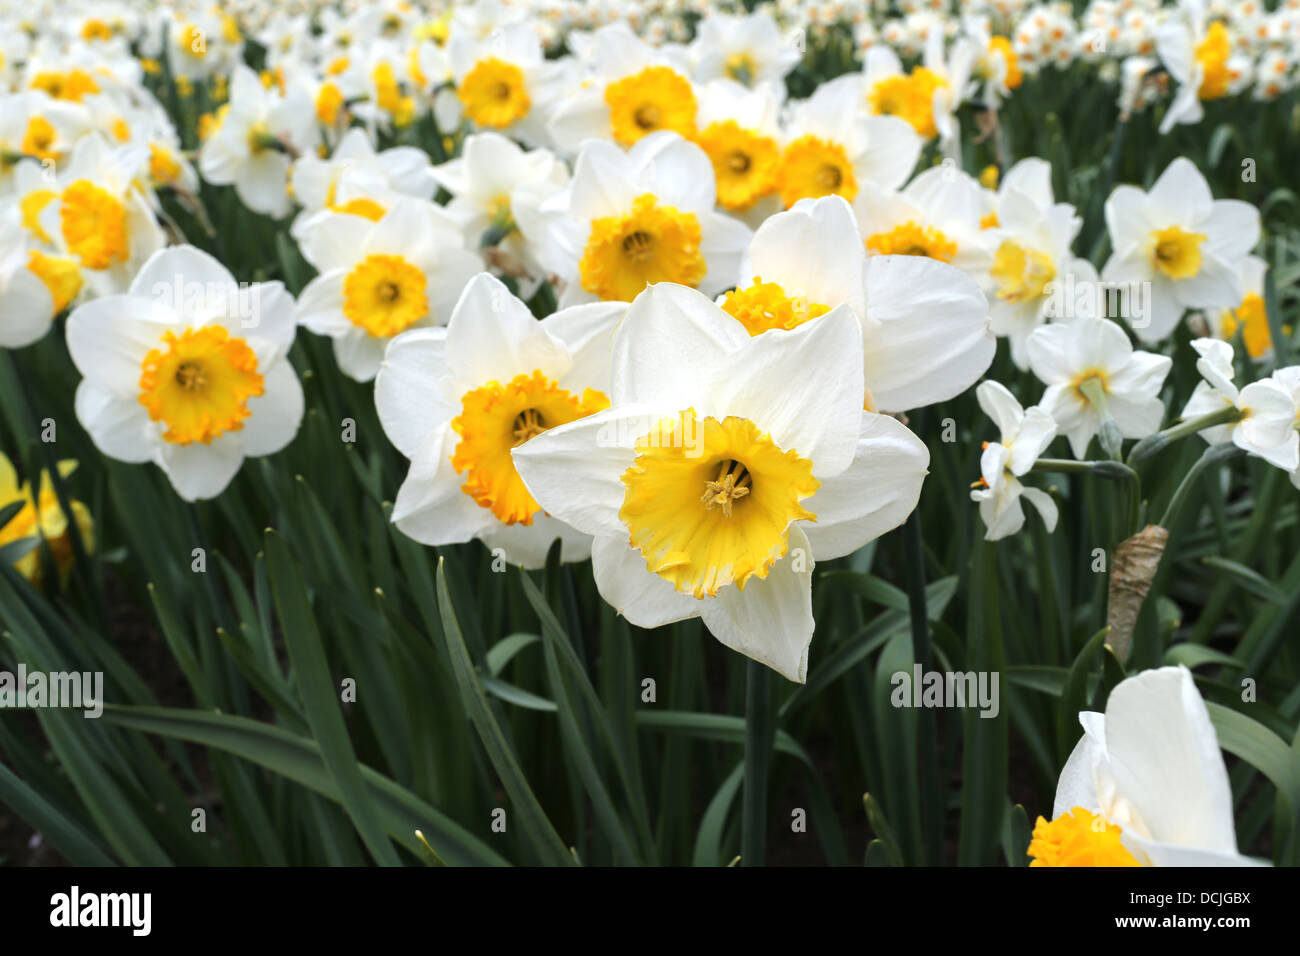 Lilies Blooming In Holland Of The 1 700 Varieties Of Tulips And